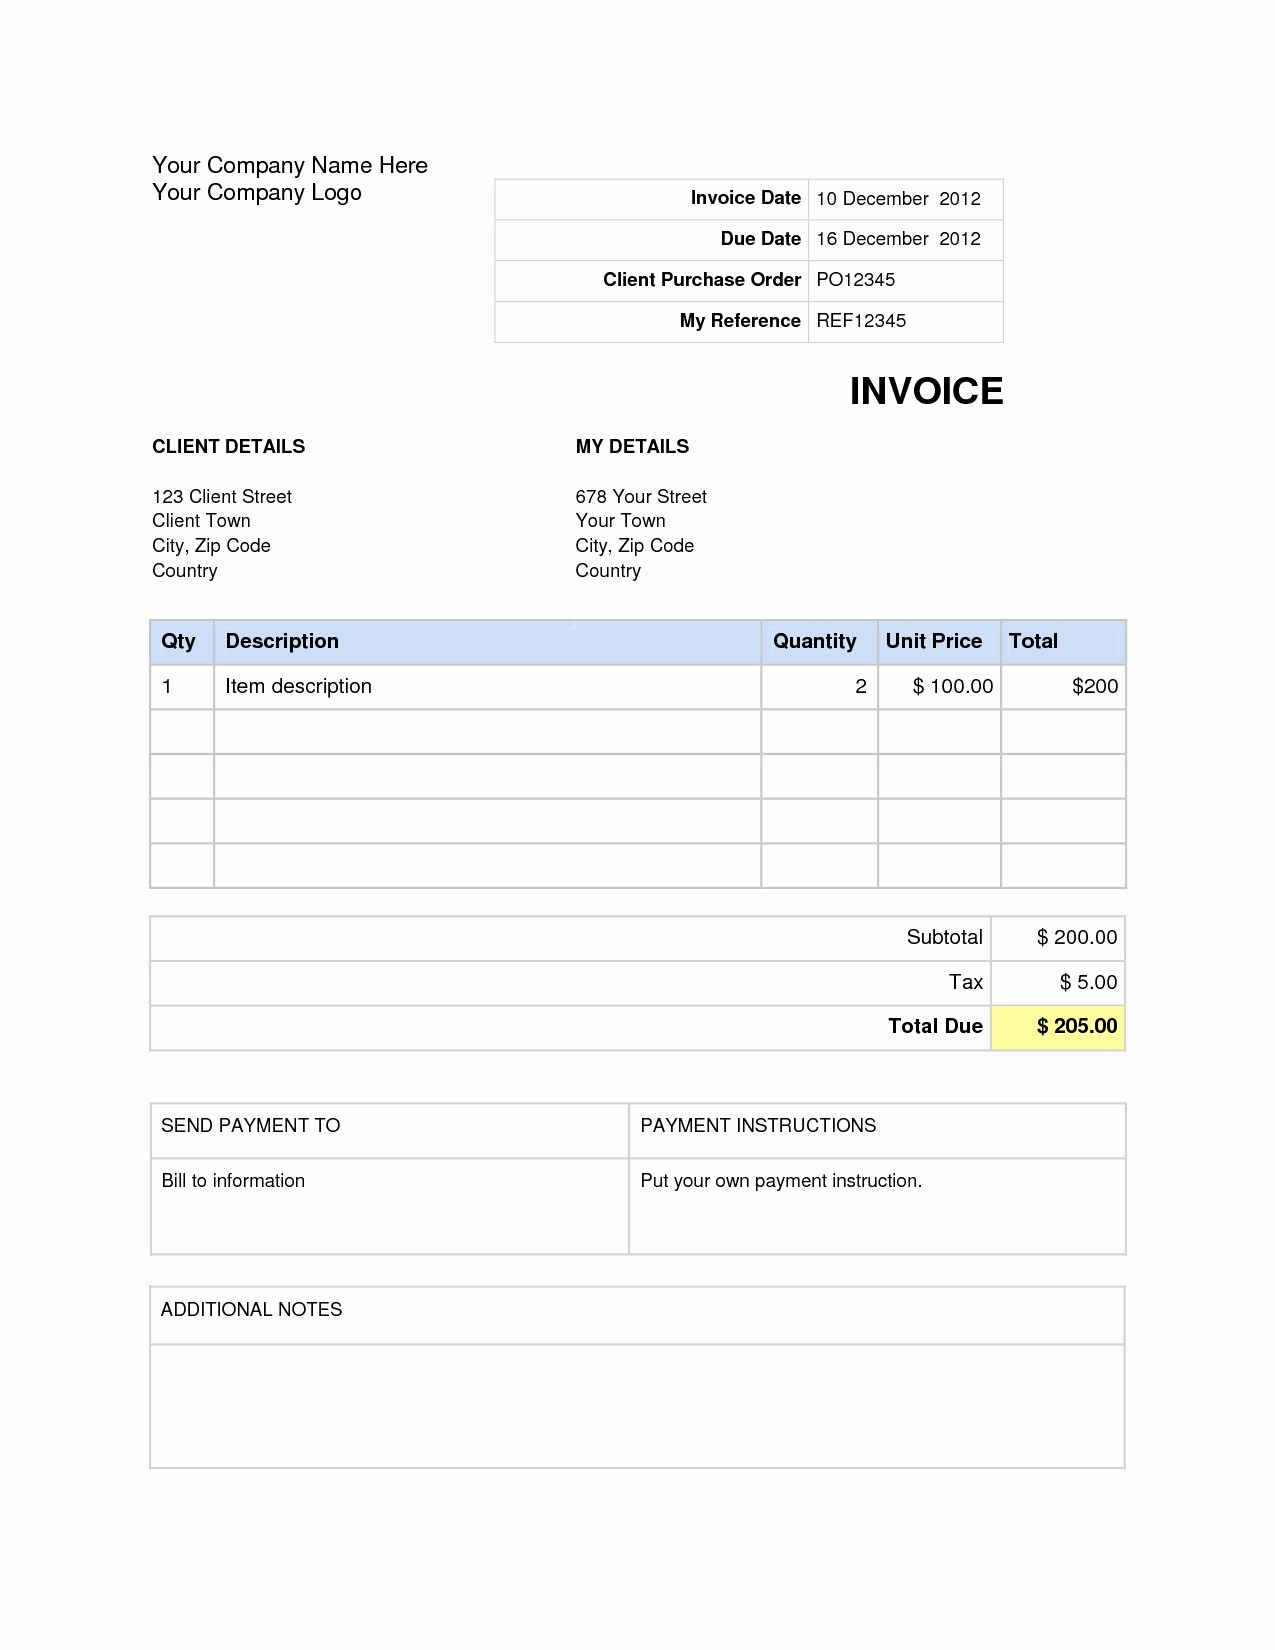 Free Download Templates for Word Lovely Download Invoice Template Word 2007